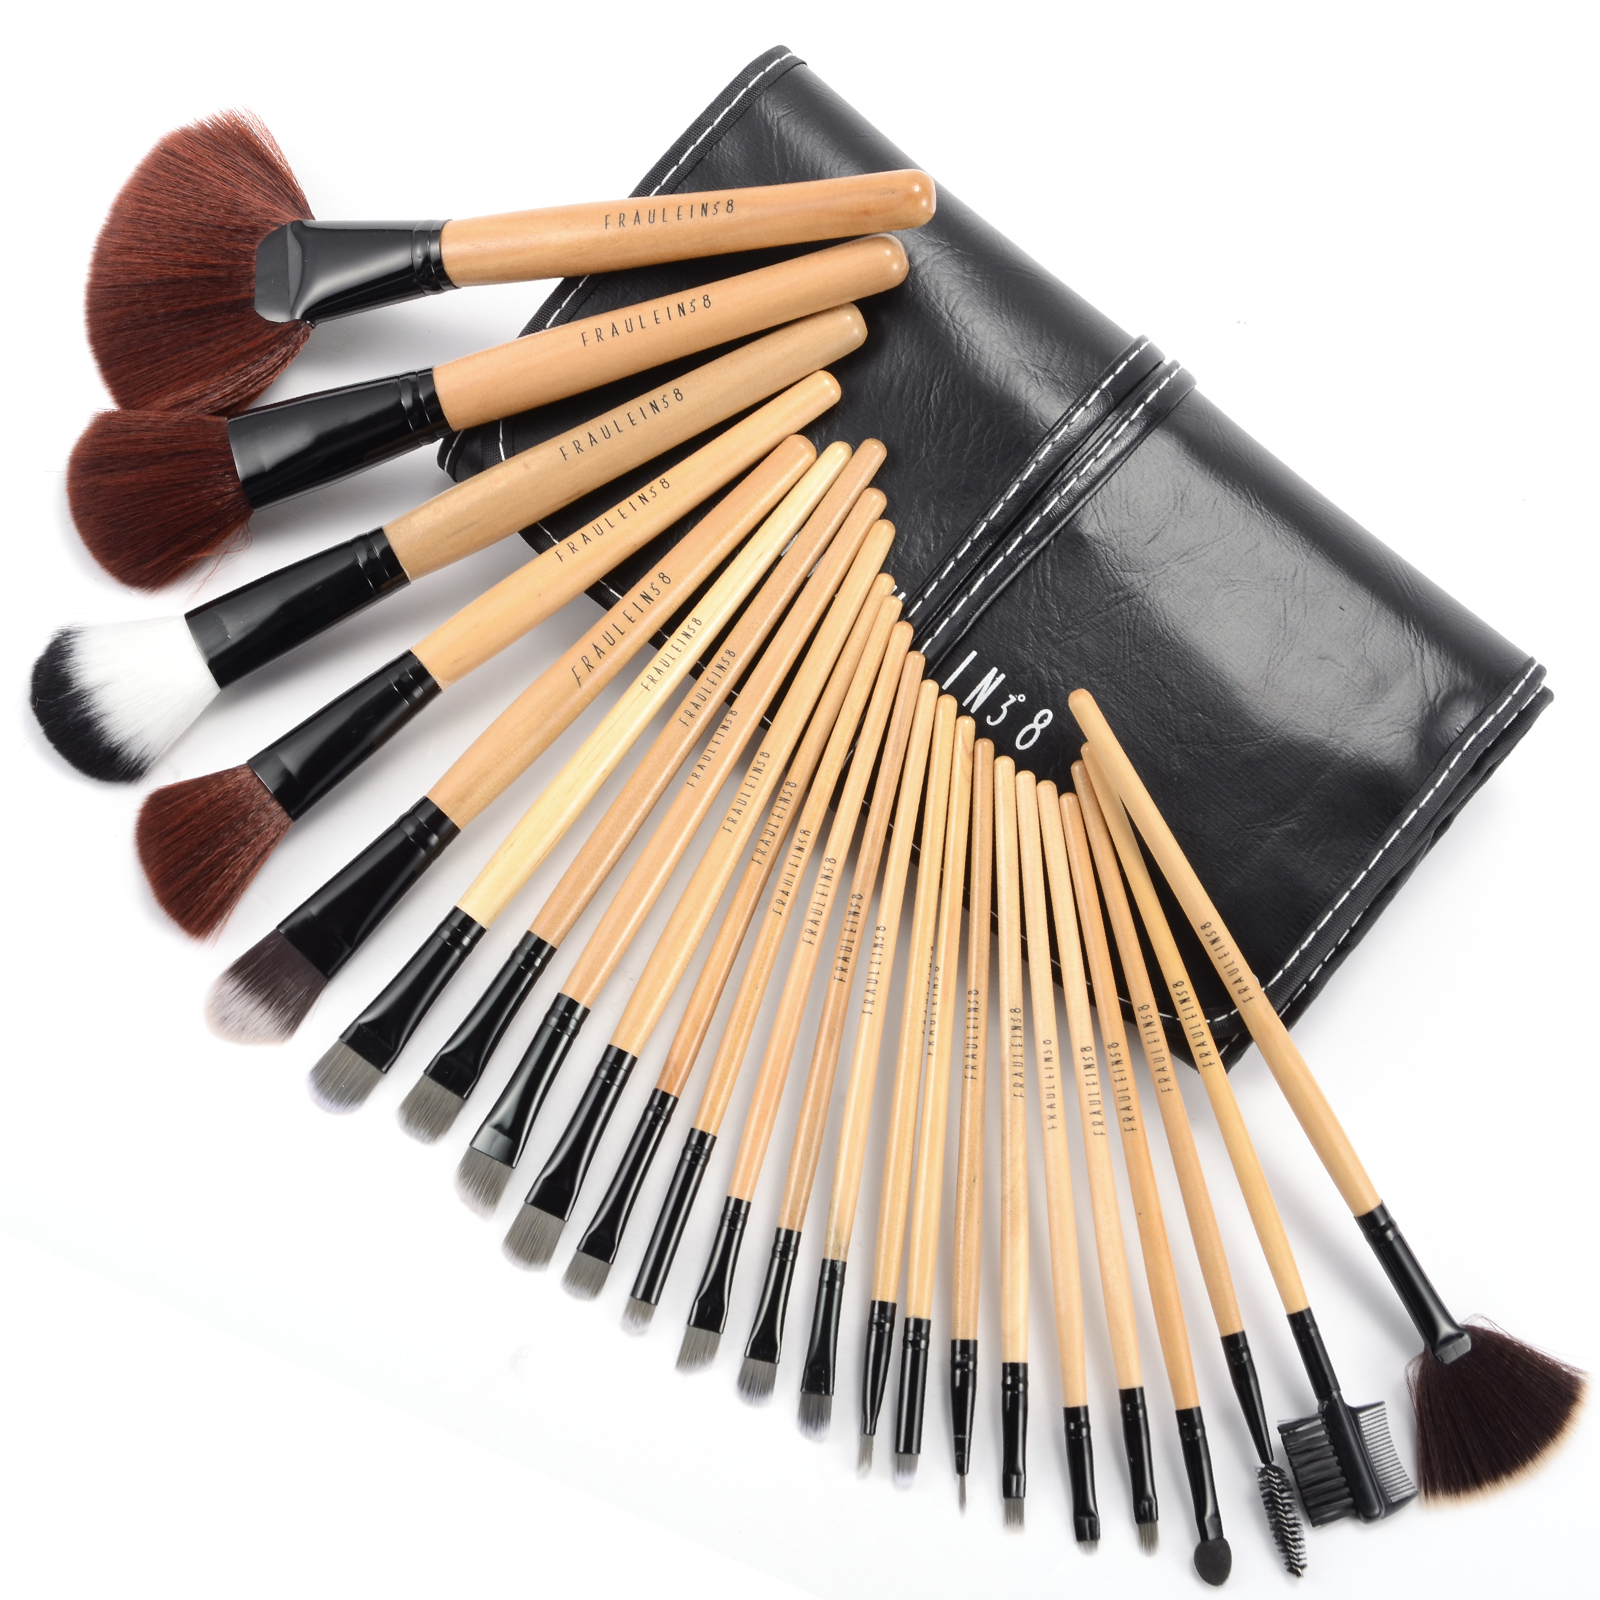 fraulein38 24tlg pinsel brush make up set pinselset 9 motive tasche ebay. Black Bedroom Furniture Sets. Home Design Ideas